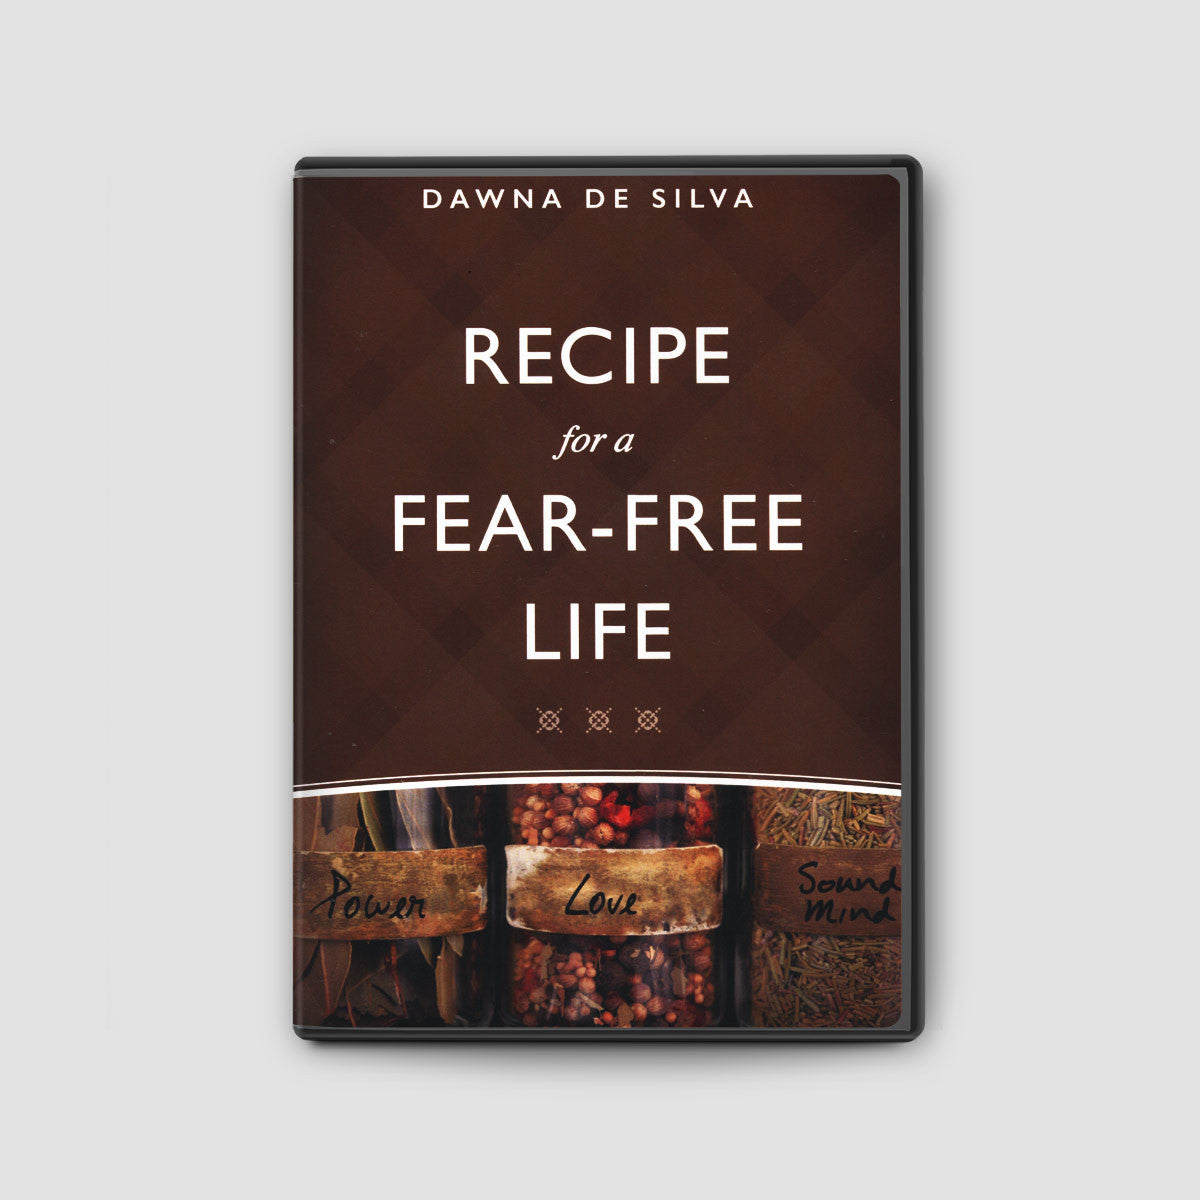 Recipe for a Fear-Free Life